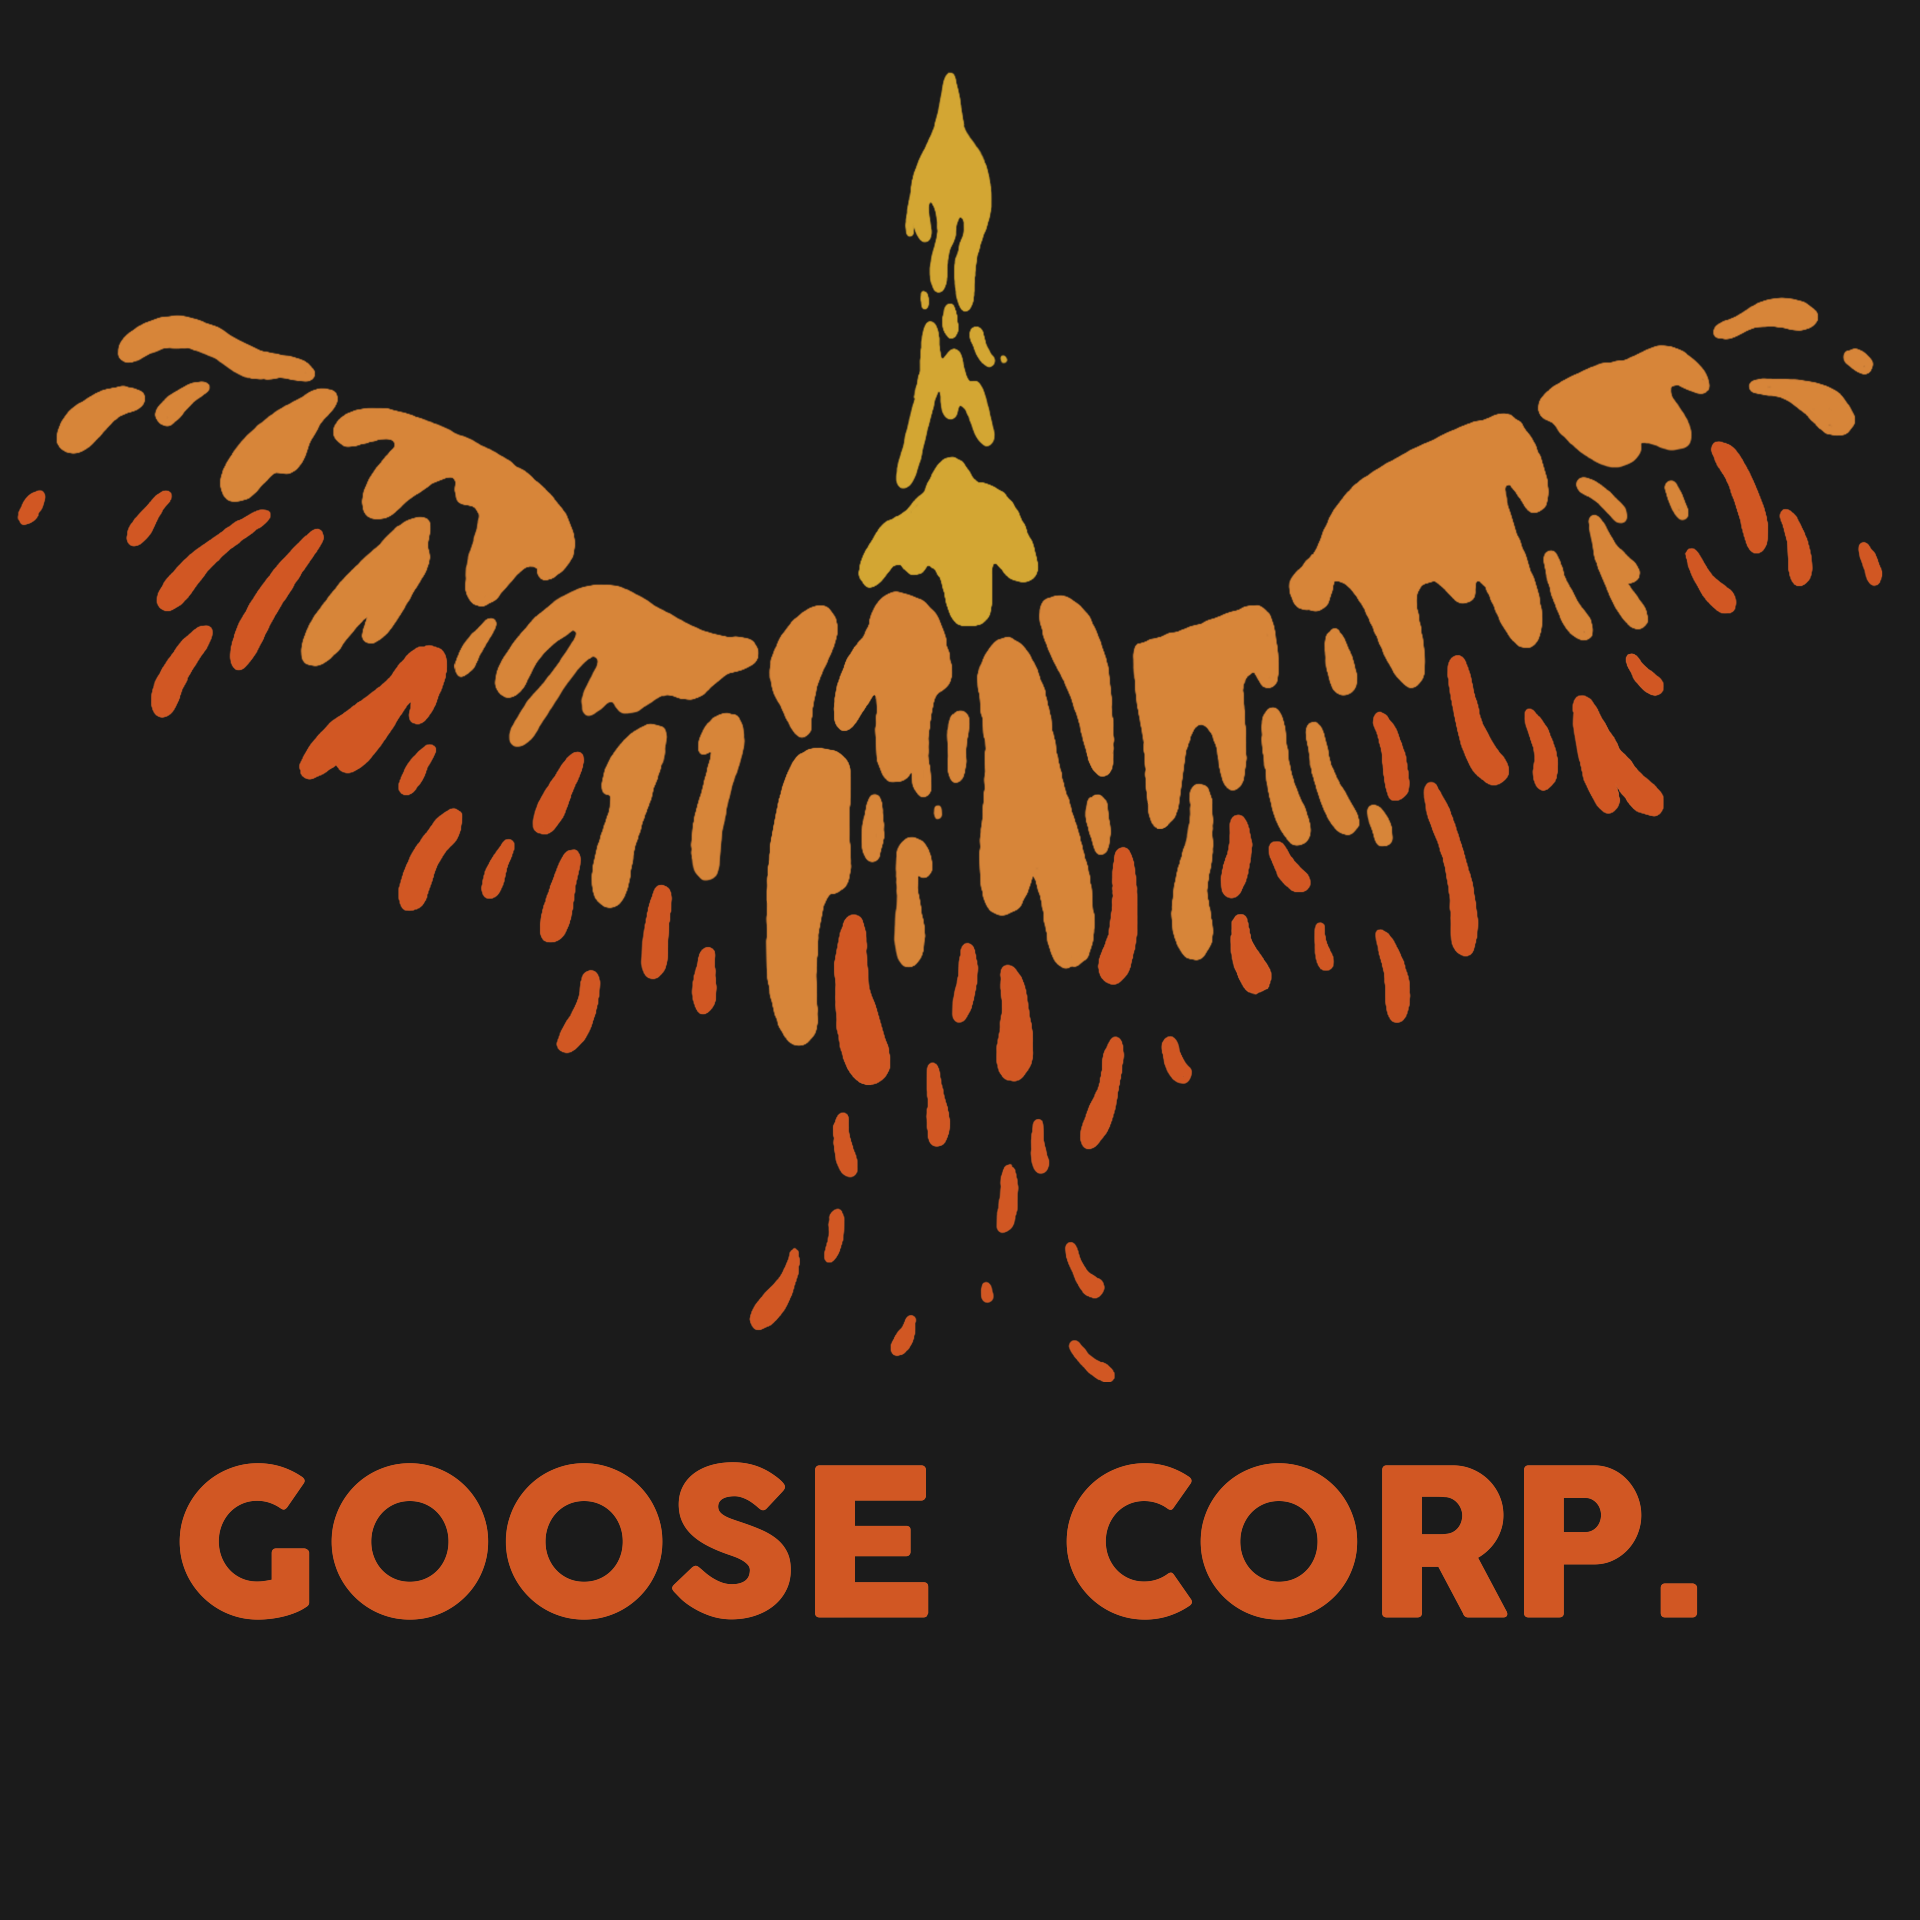 GooseCorp_StickerDesign_Orange_BG.png